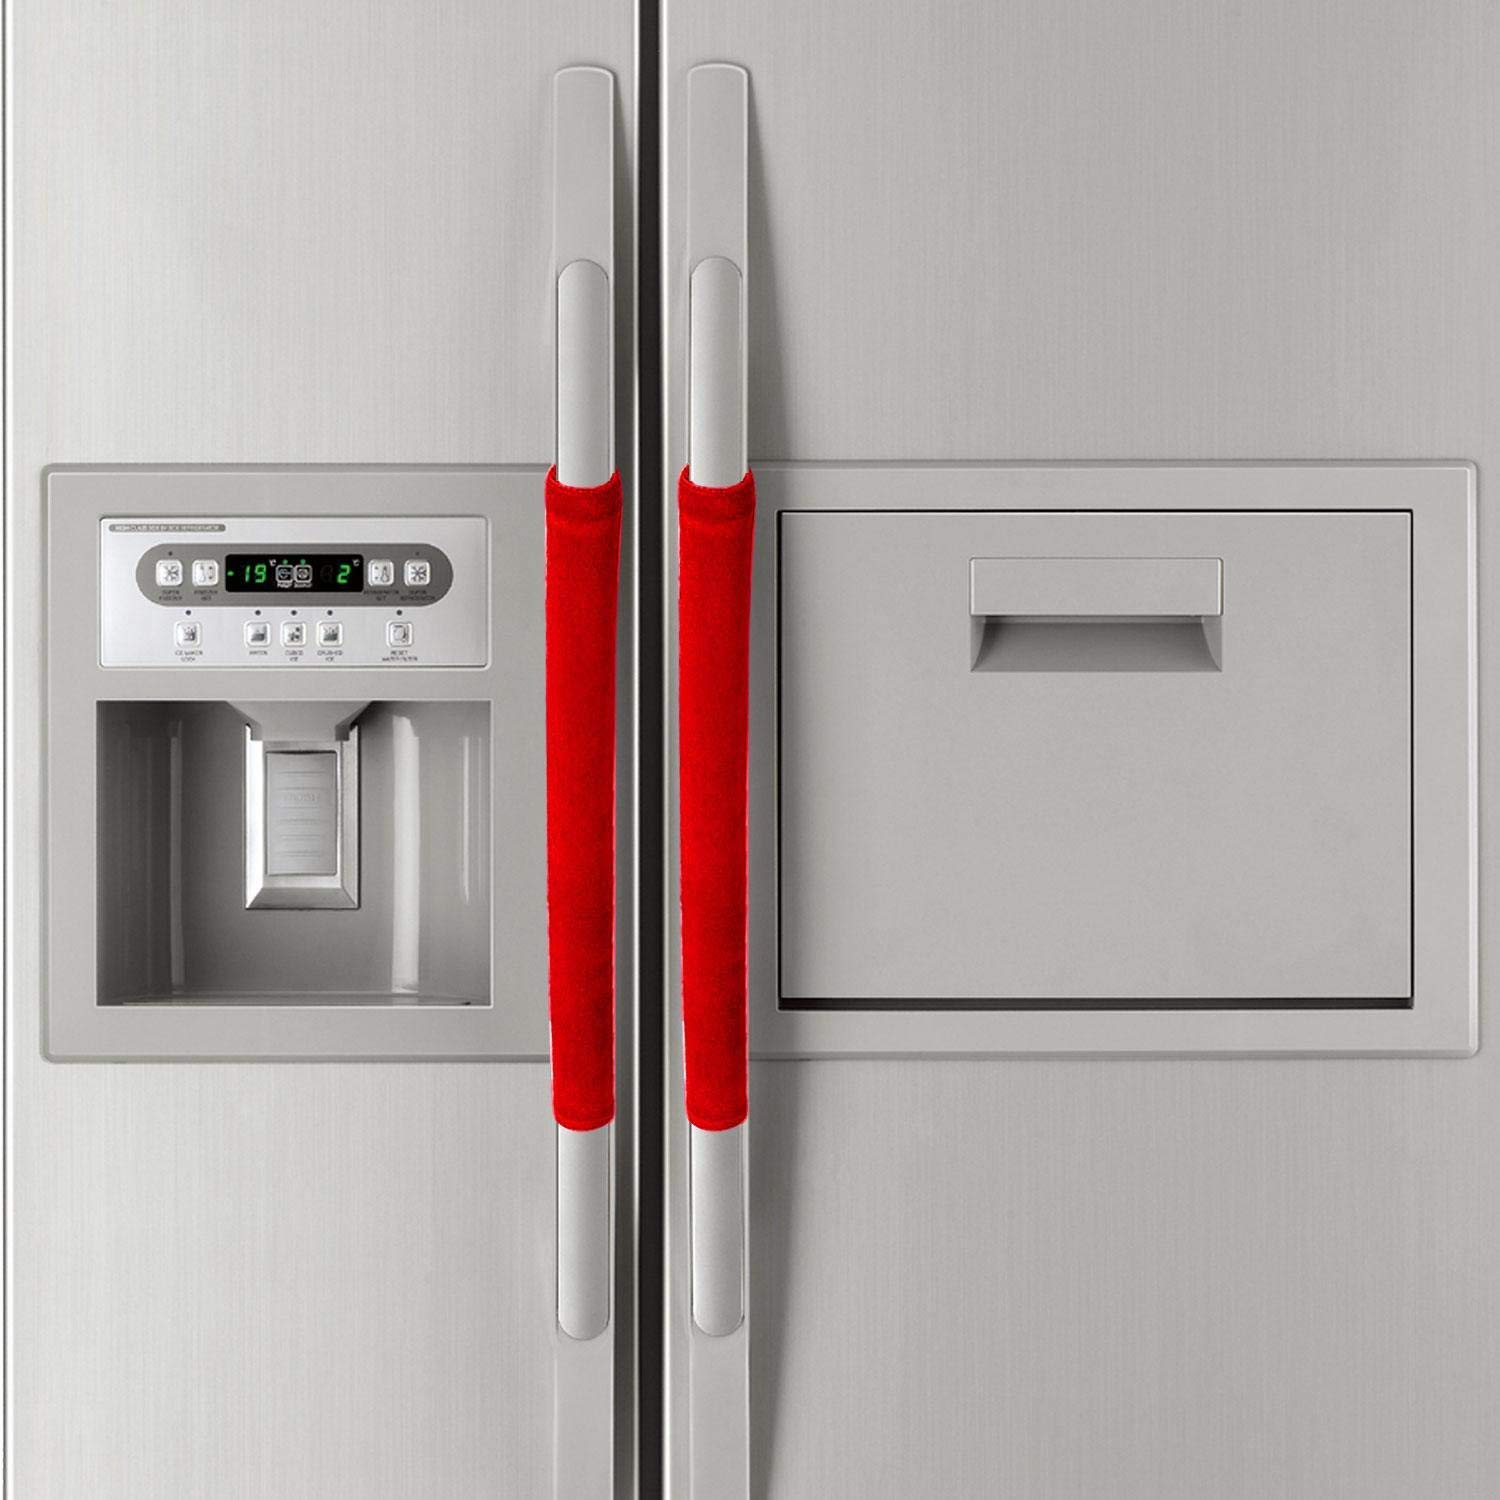 Buy Refrigerator Door Handle Covers,Double-Door Fridge Door ...